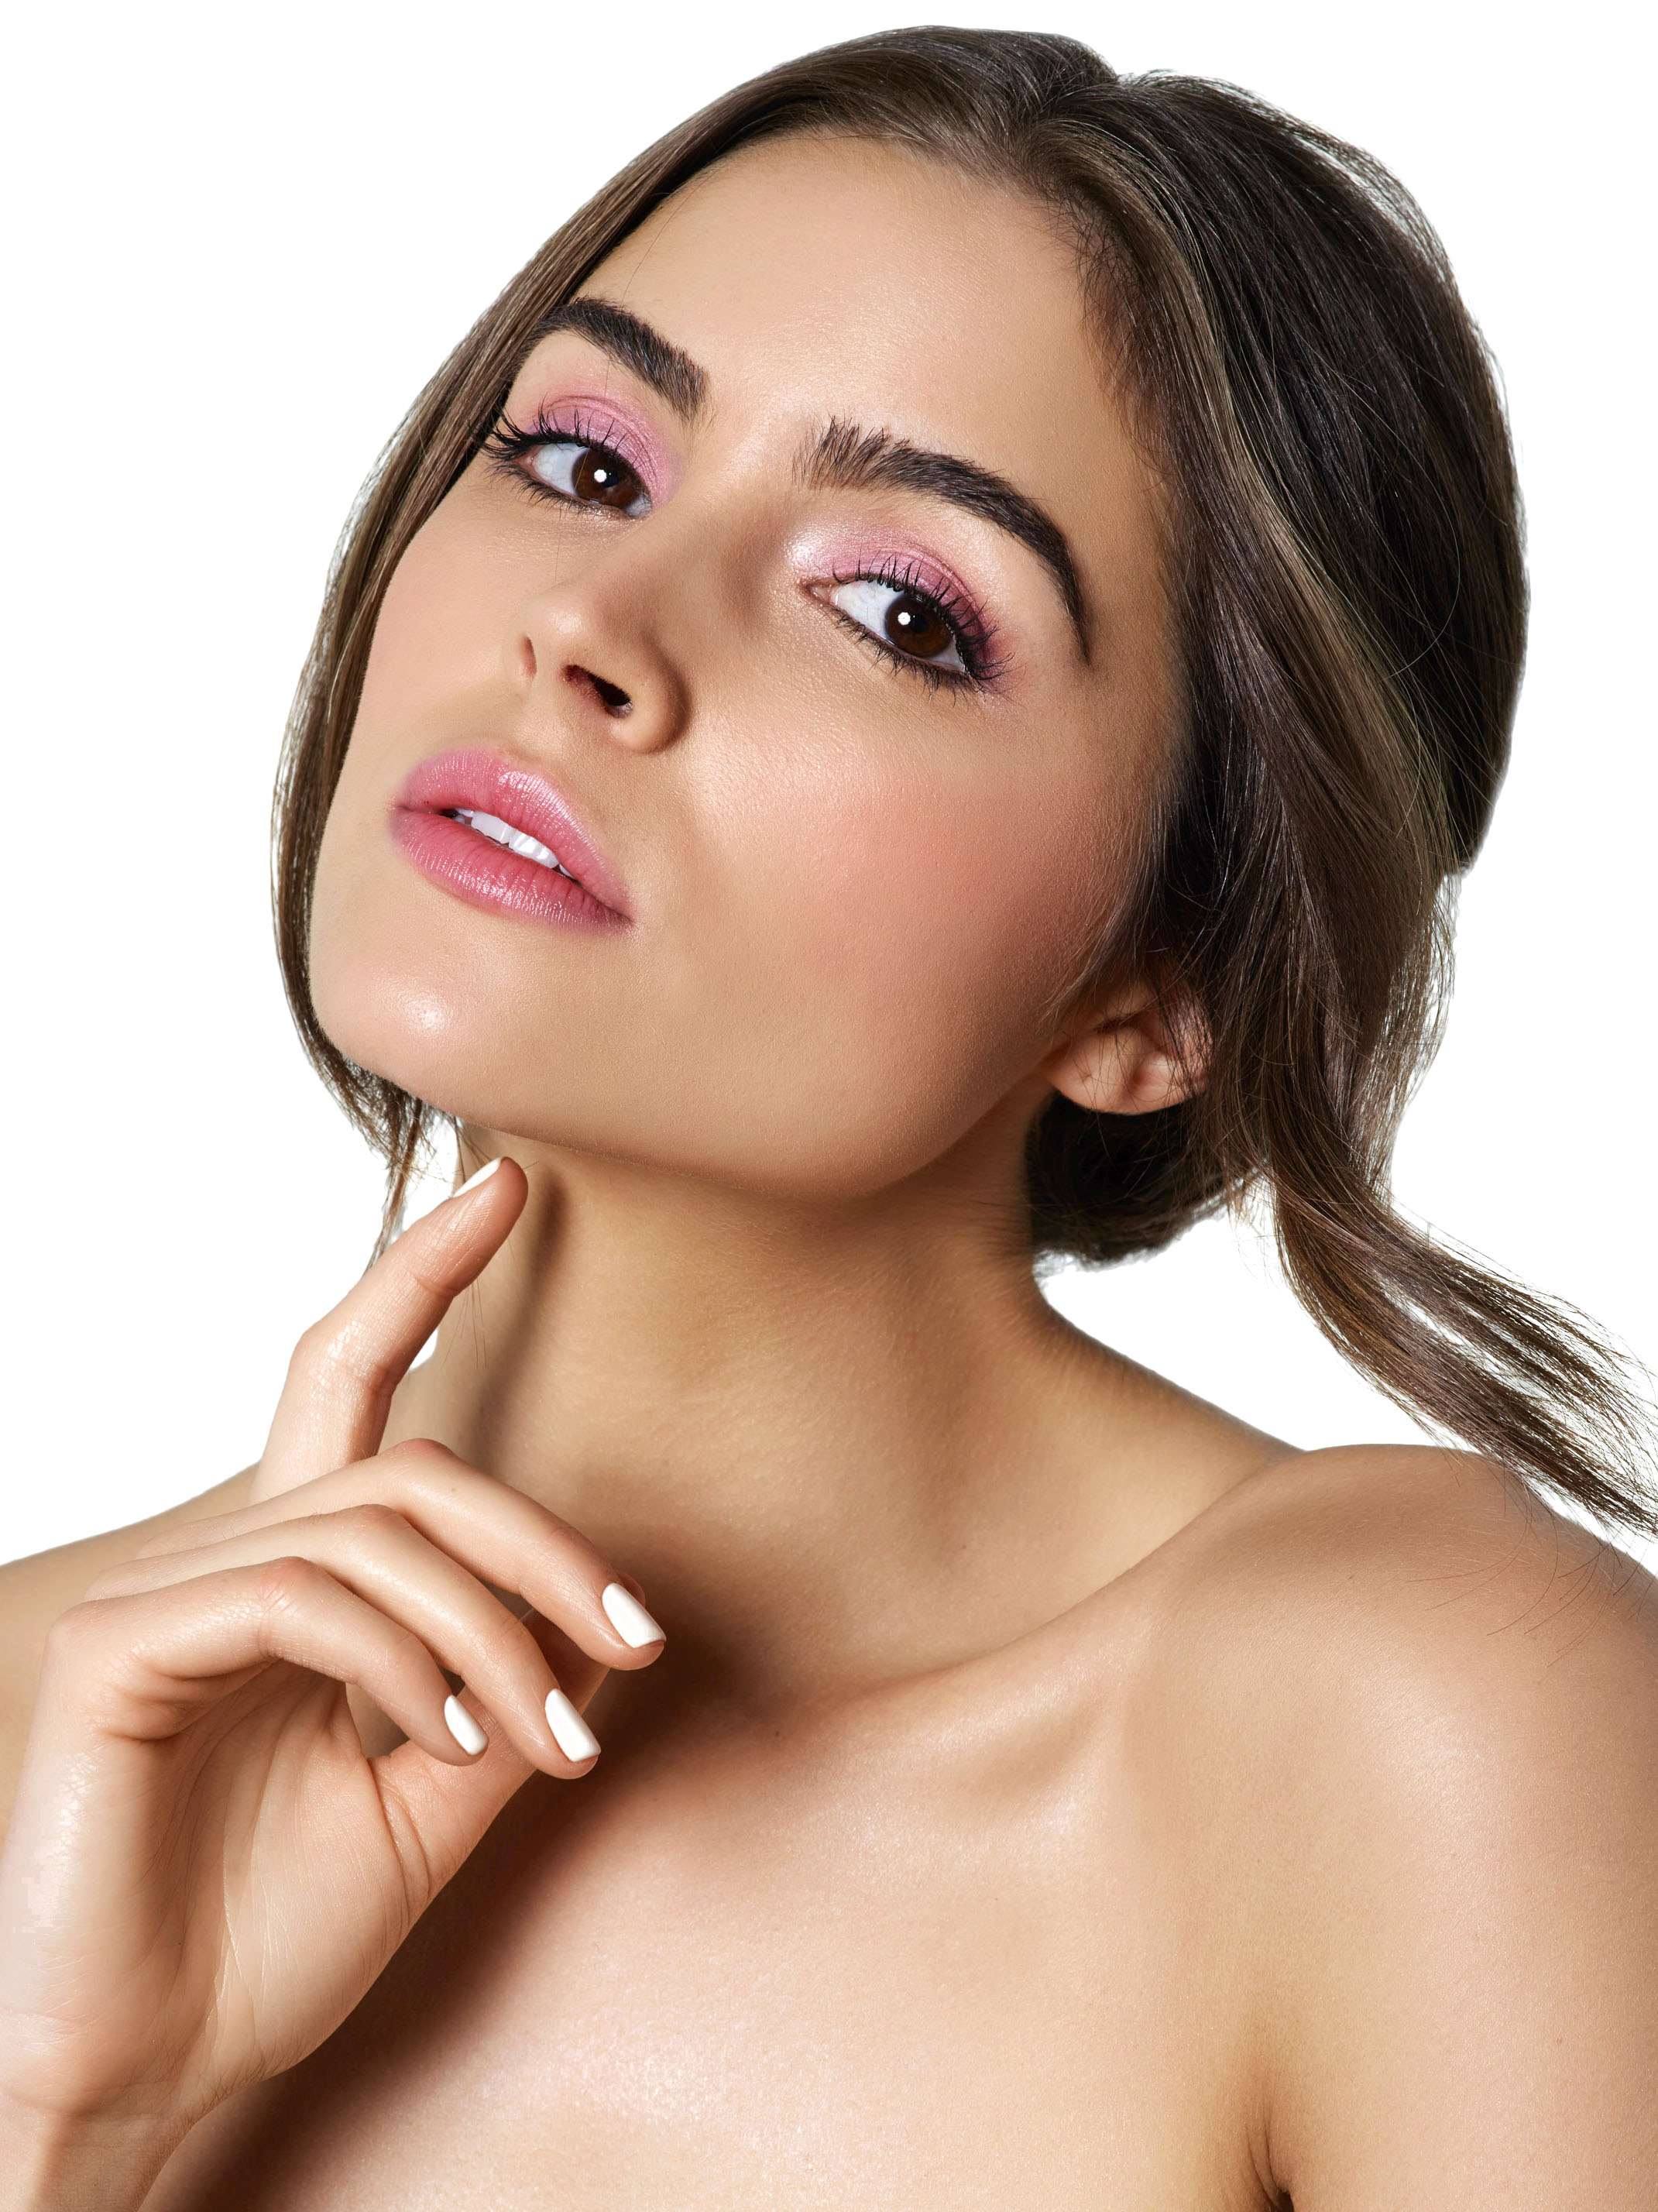 Five Makeup Tips From A Pro Makeup Artist: Olivia Culpo Wears The Five Best Makeup Trends For Spring